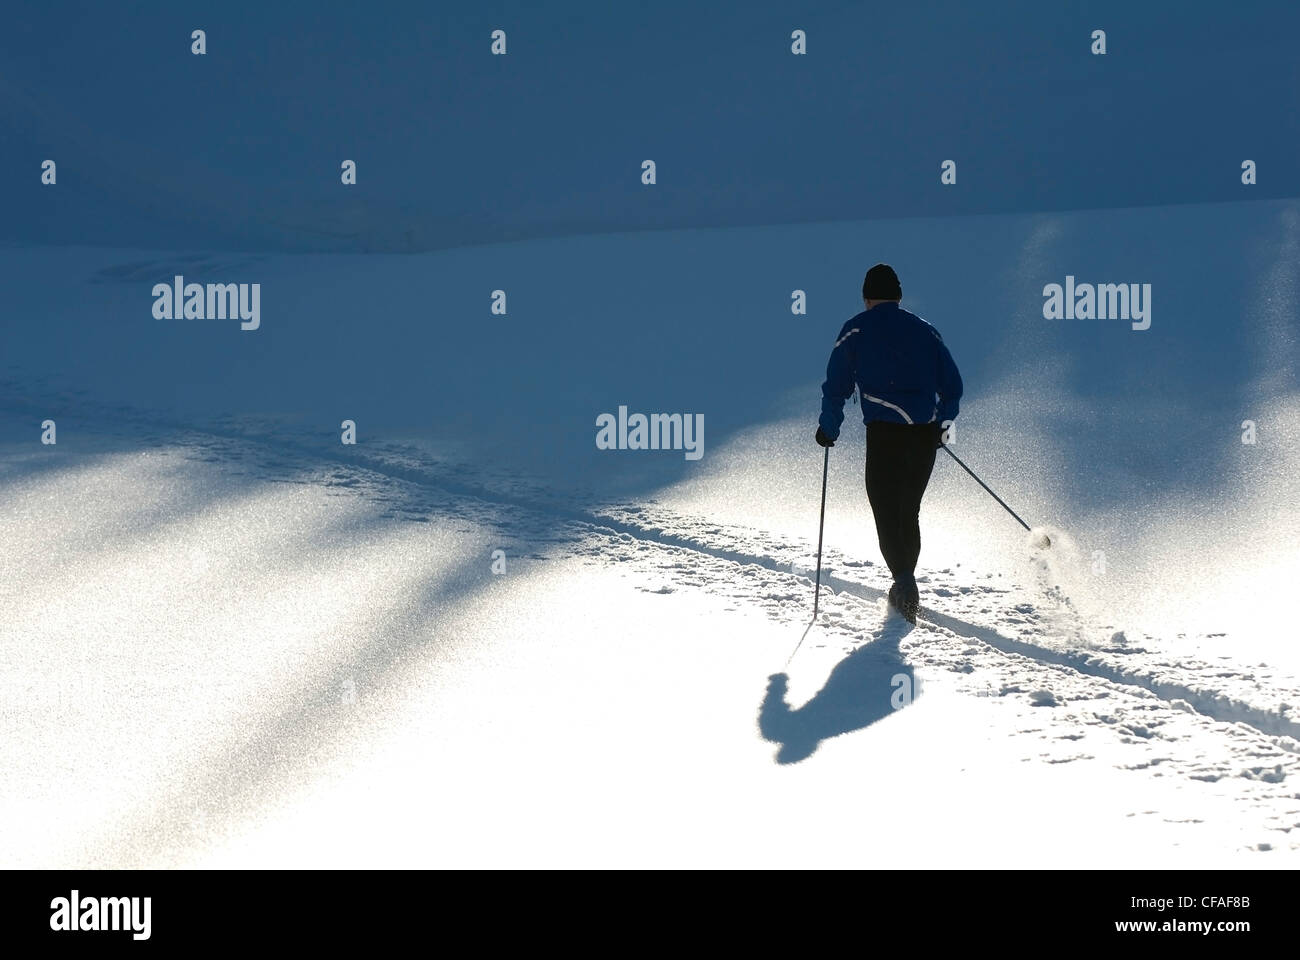 Middle aged man snowshoeing in afternoon sun, Sun Peaks Resort, British Columbia, Canada. - Stock Image